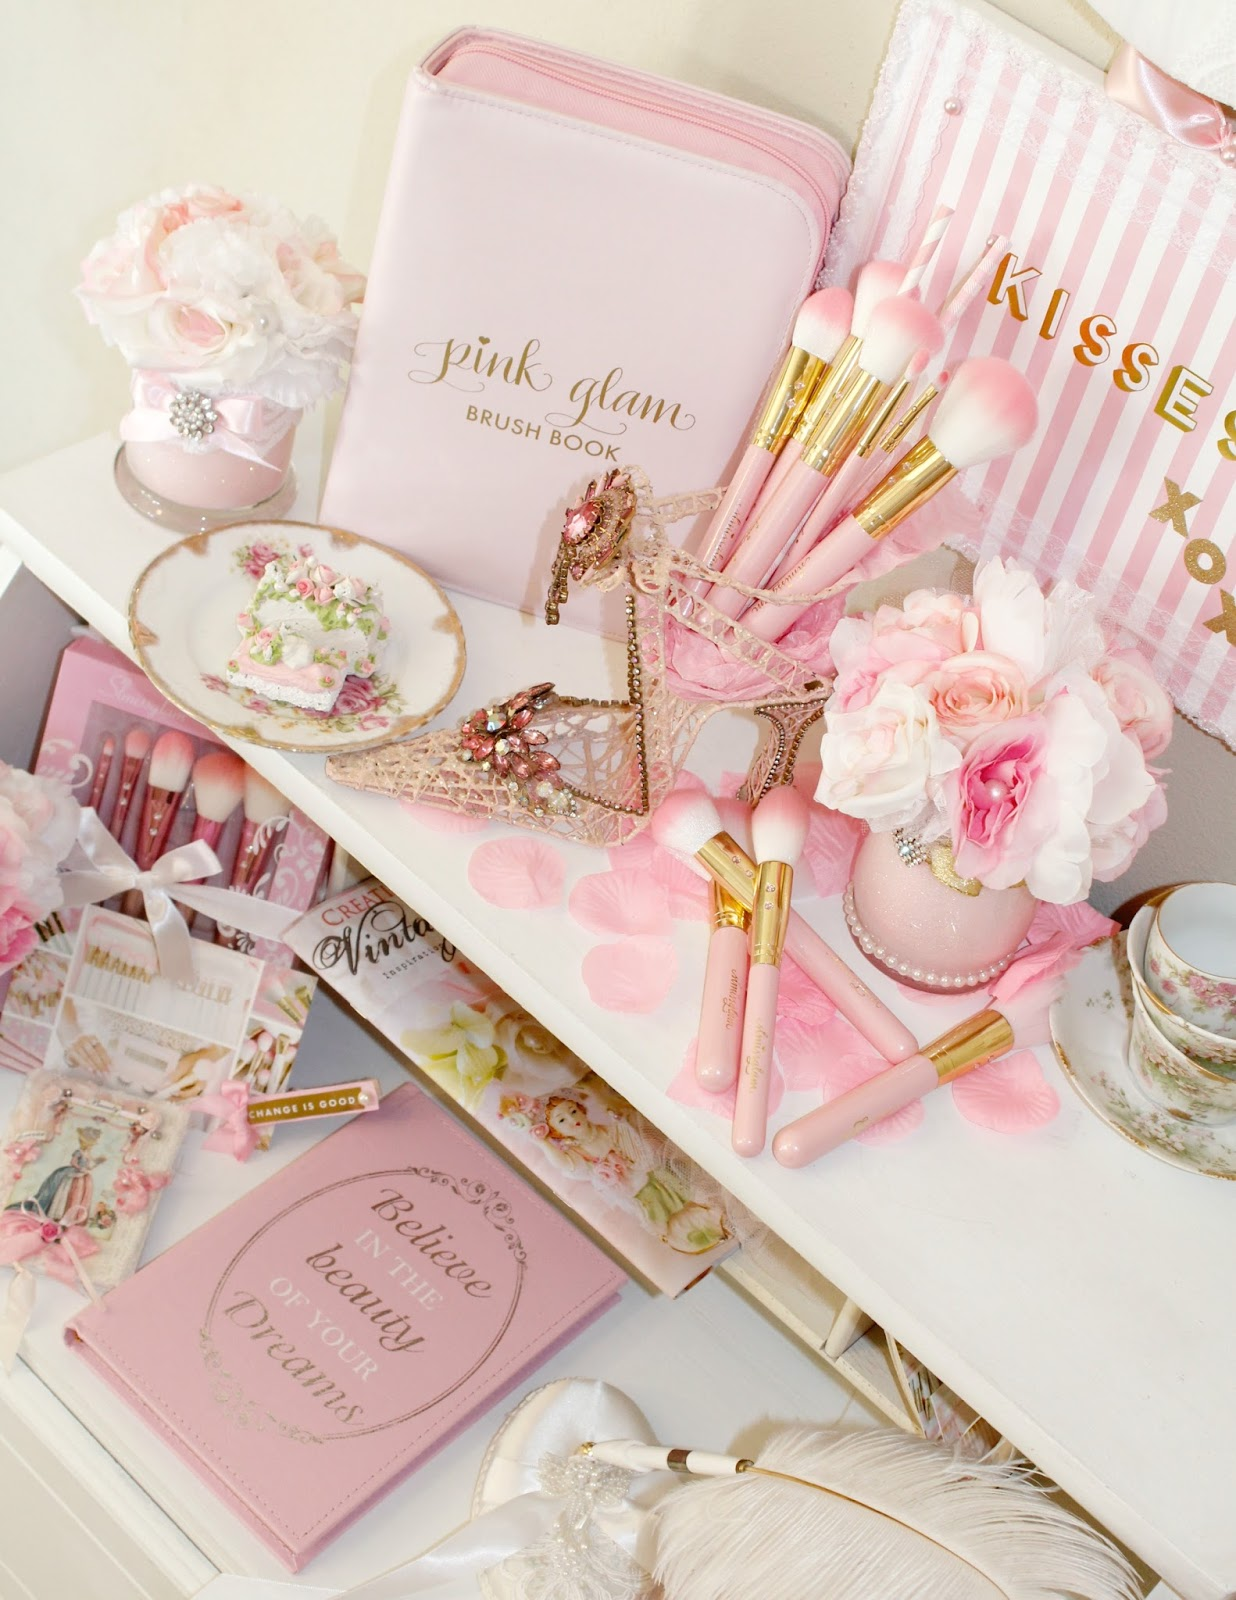 Olivia\'s Romantic Home: Pink Glam Beauty brush book